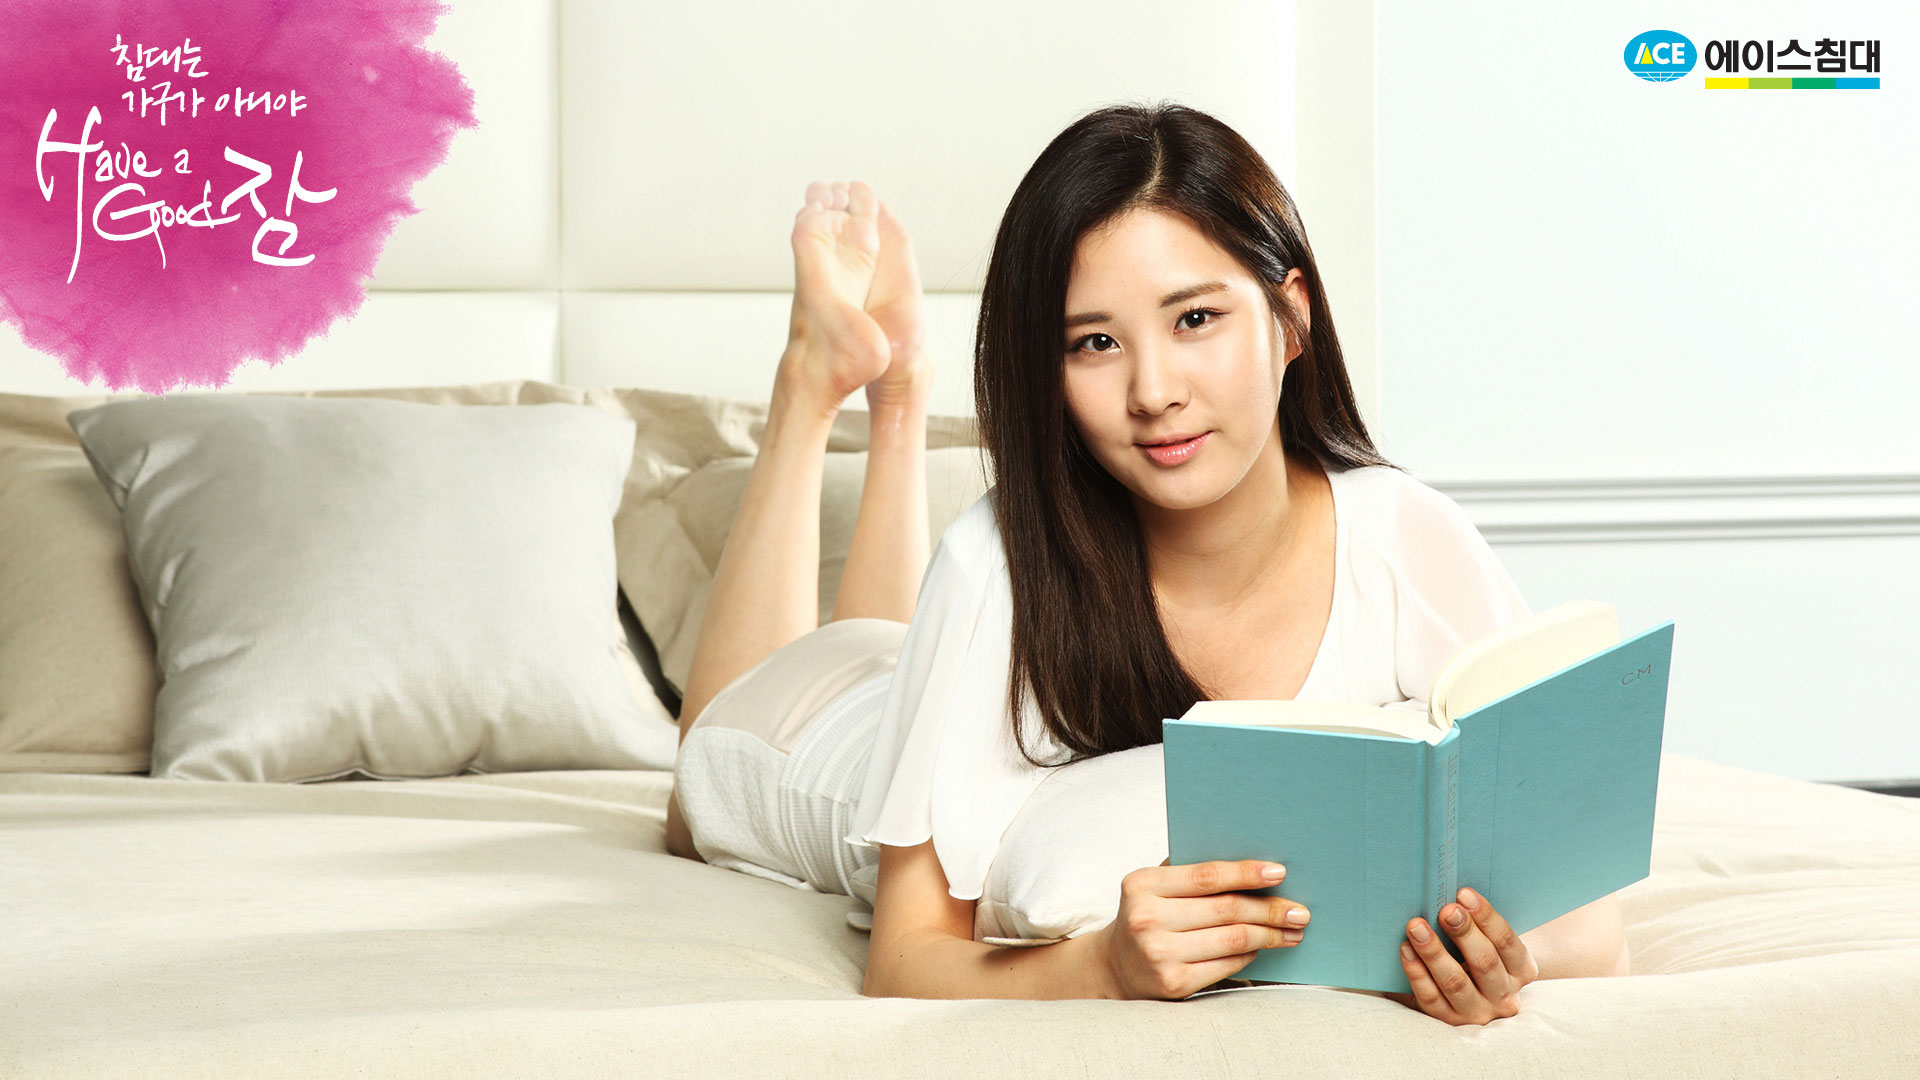 Snsd Lg 3d Tv Wallpaper Ace Bed Wallpapers Snsd Pics